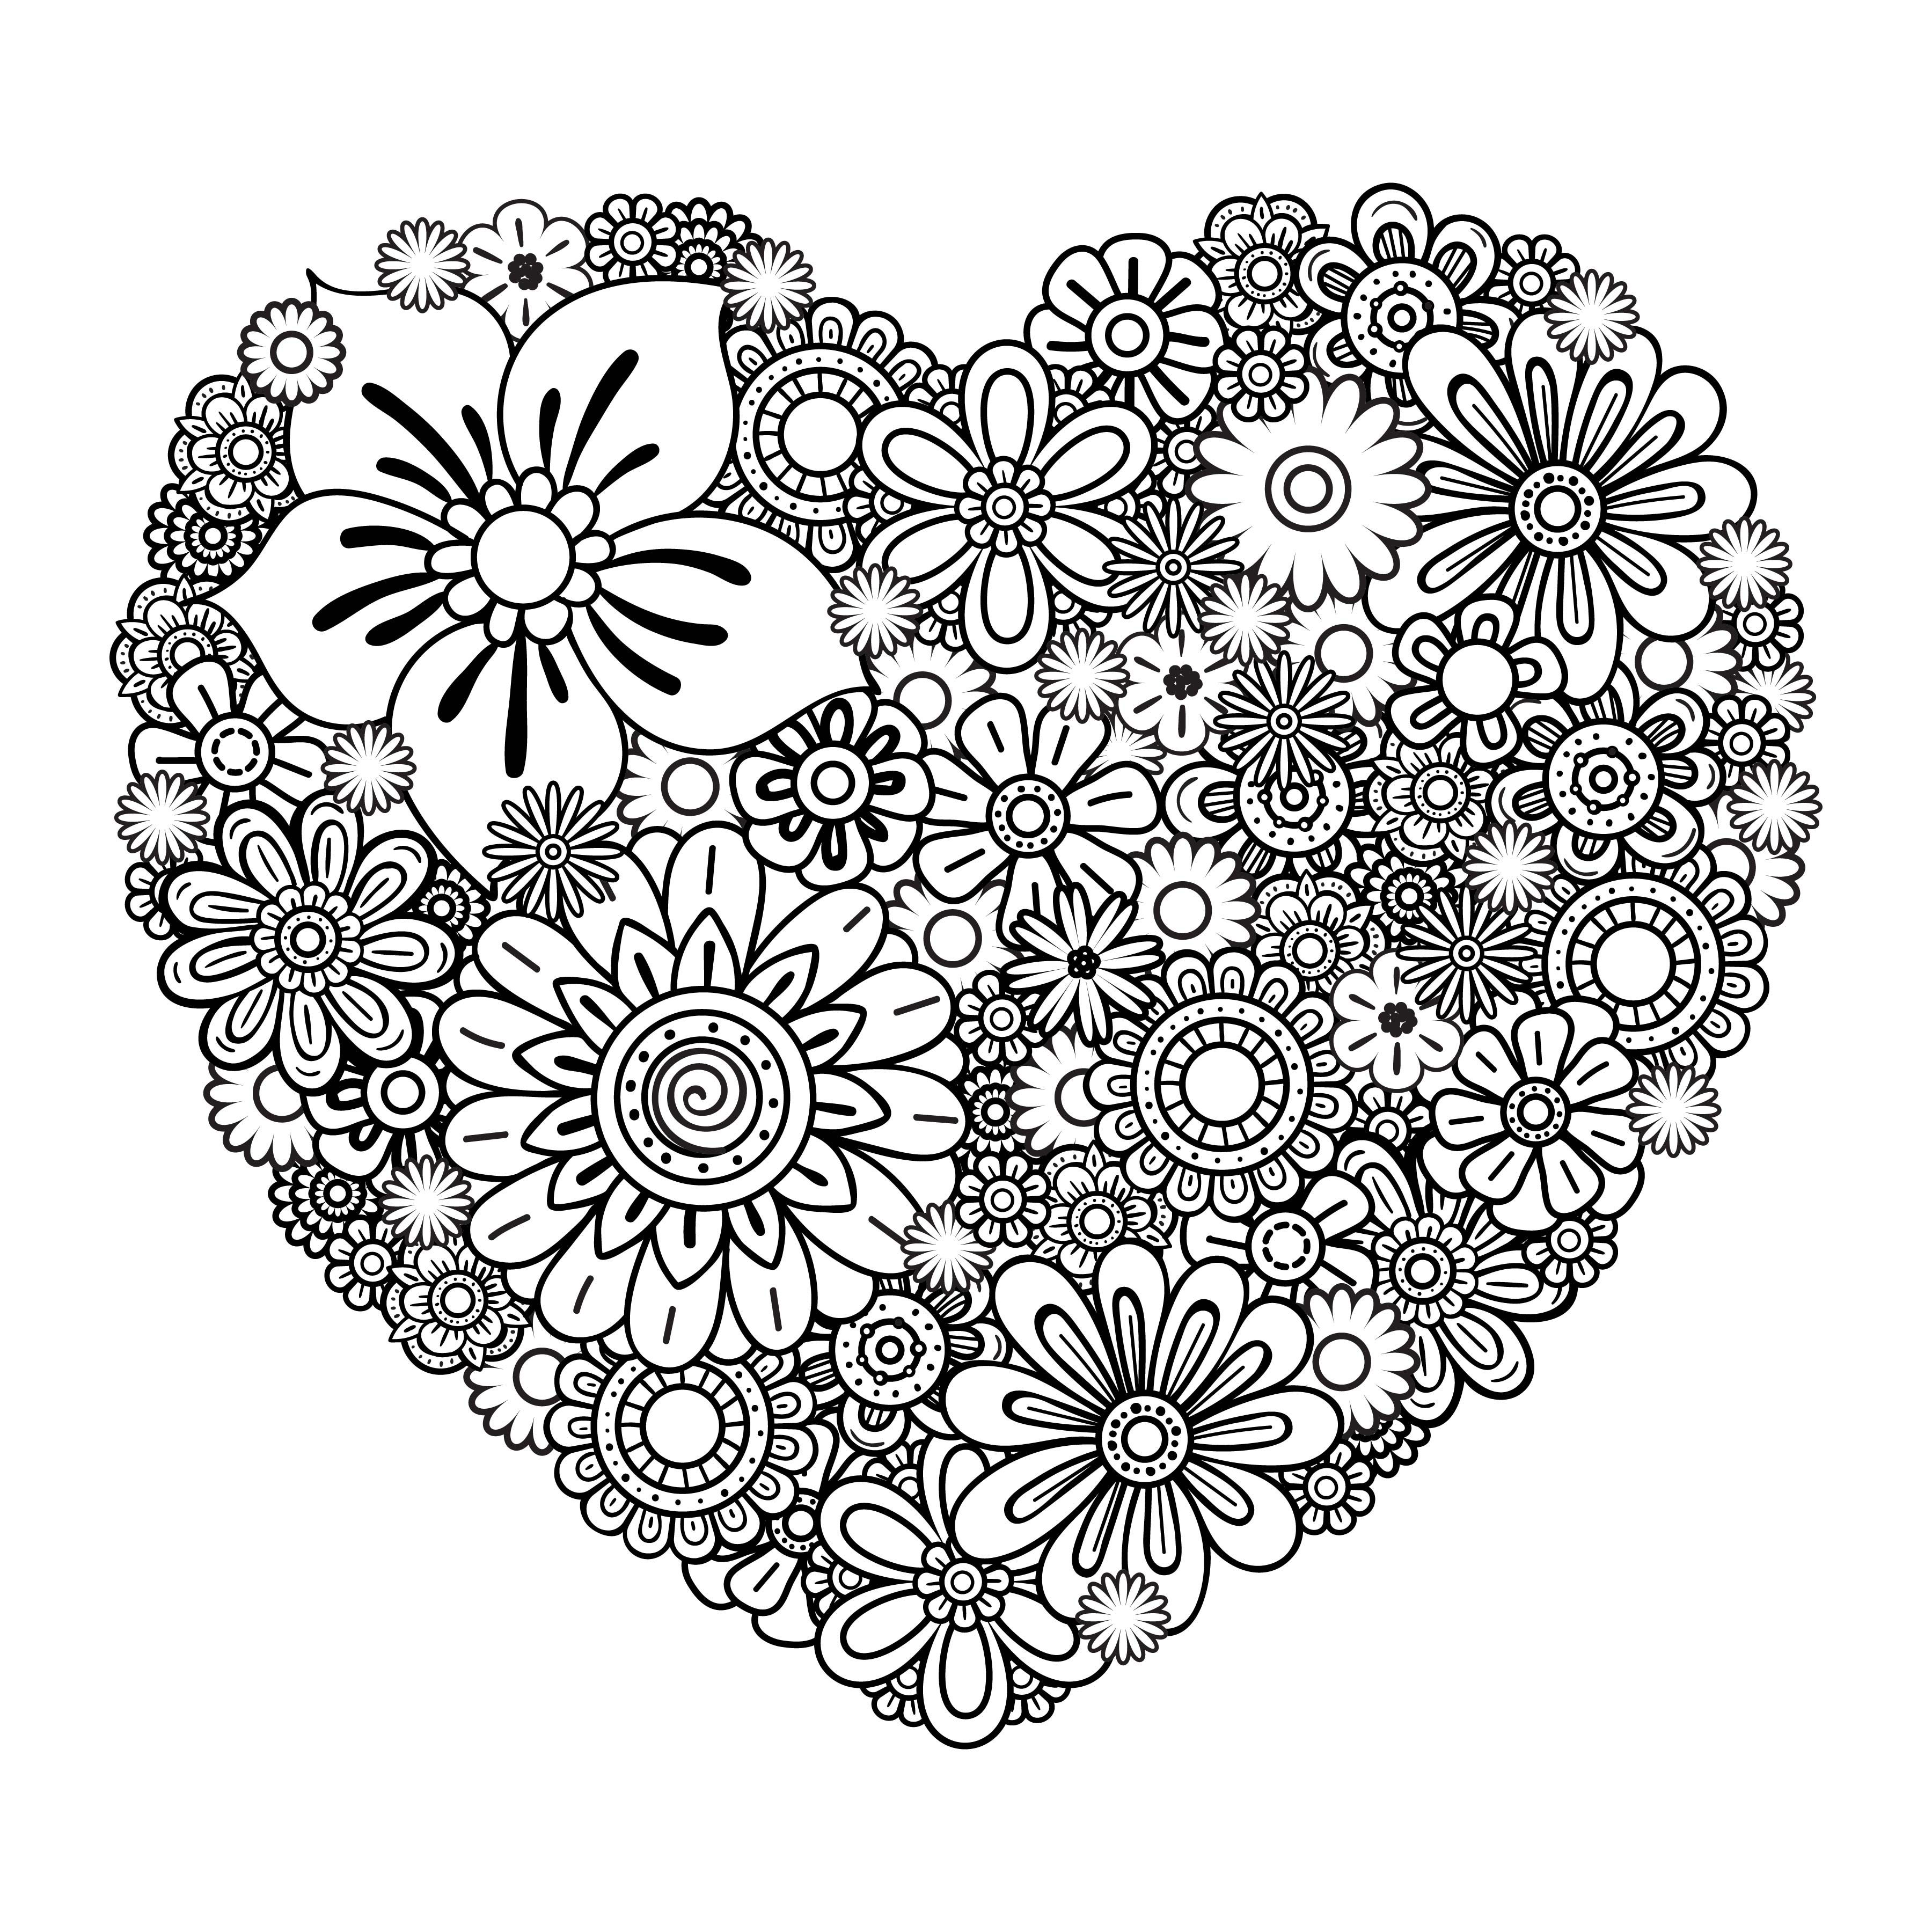 Valentine S Day Heart And Roses Coloring Page Heart Coloring Pages Valentine Coloring Pages Rose Coloring Pages